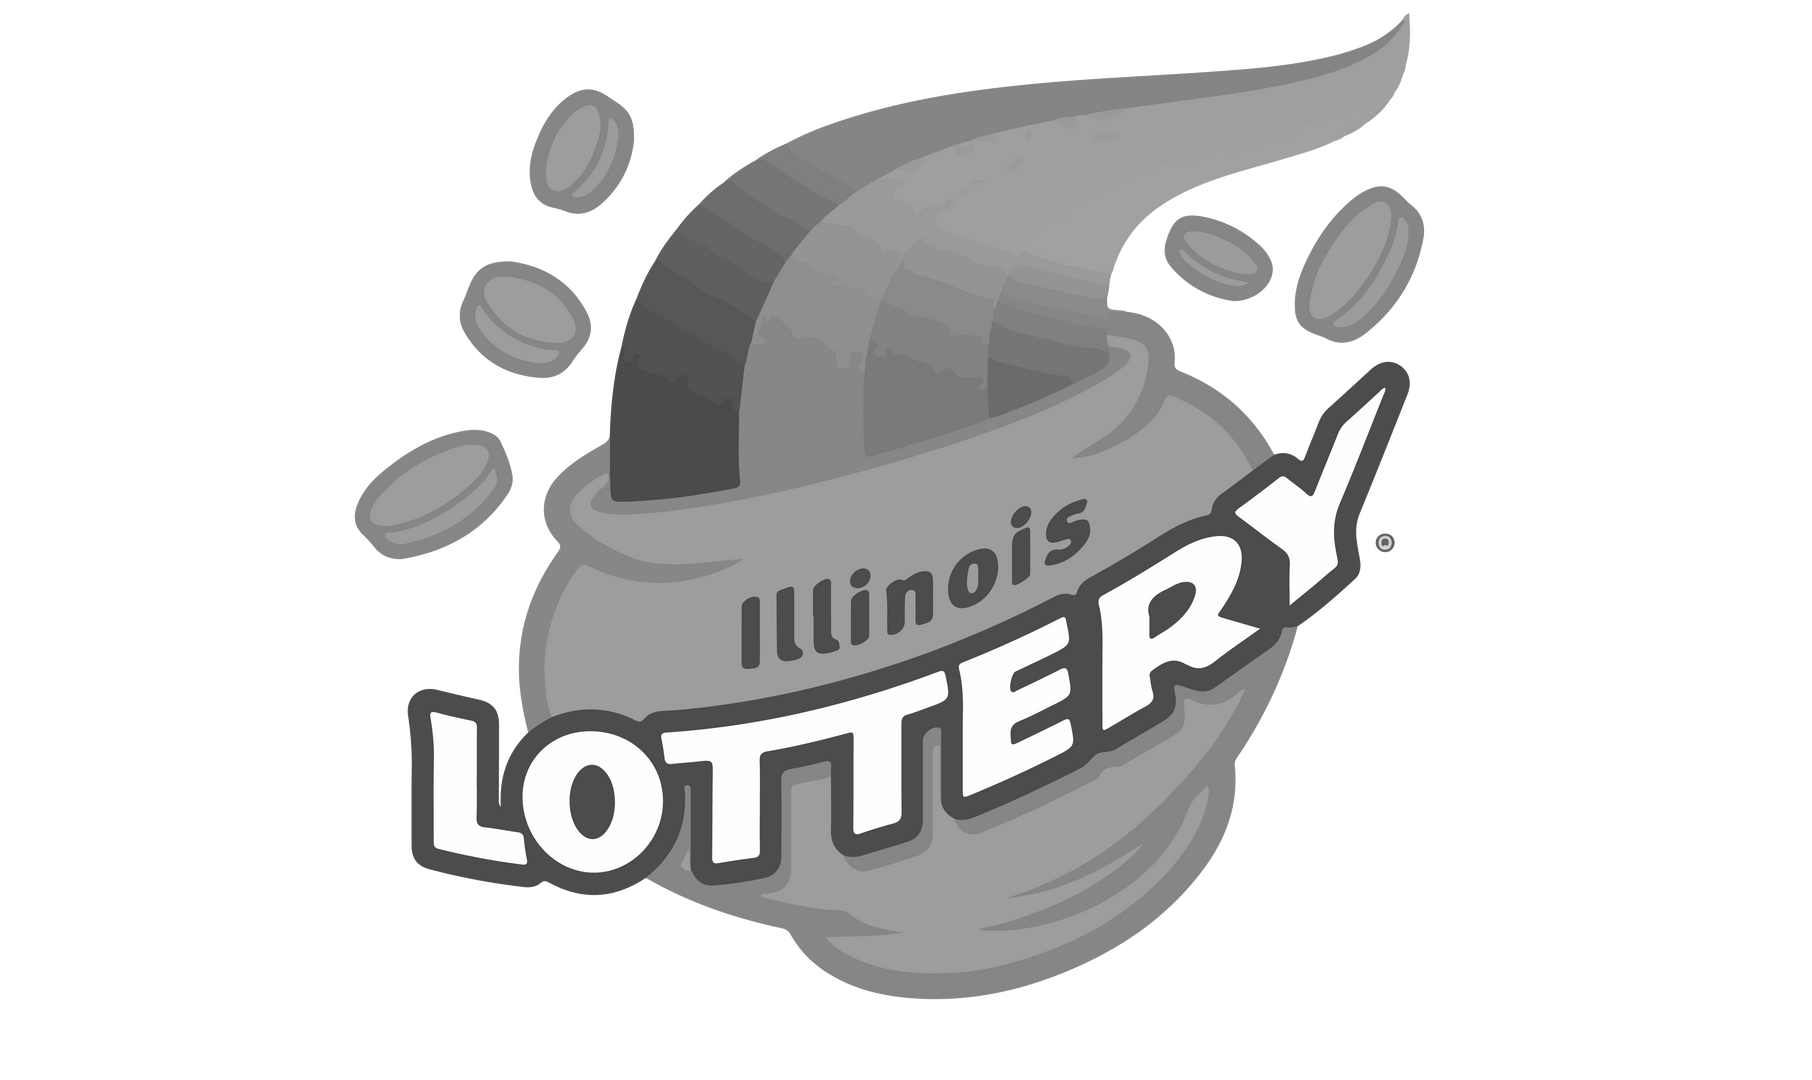 479649_011715-wls-illinois-lottery-img-0